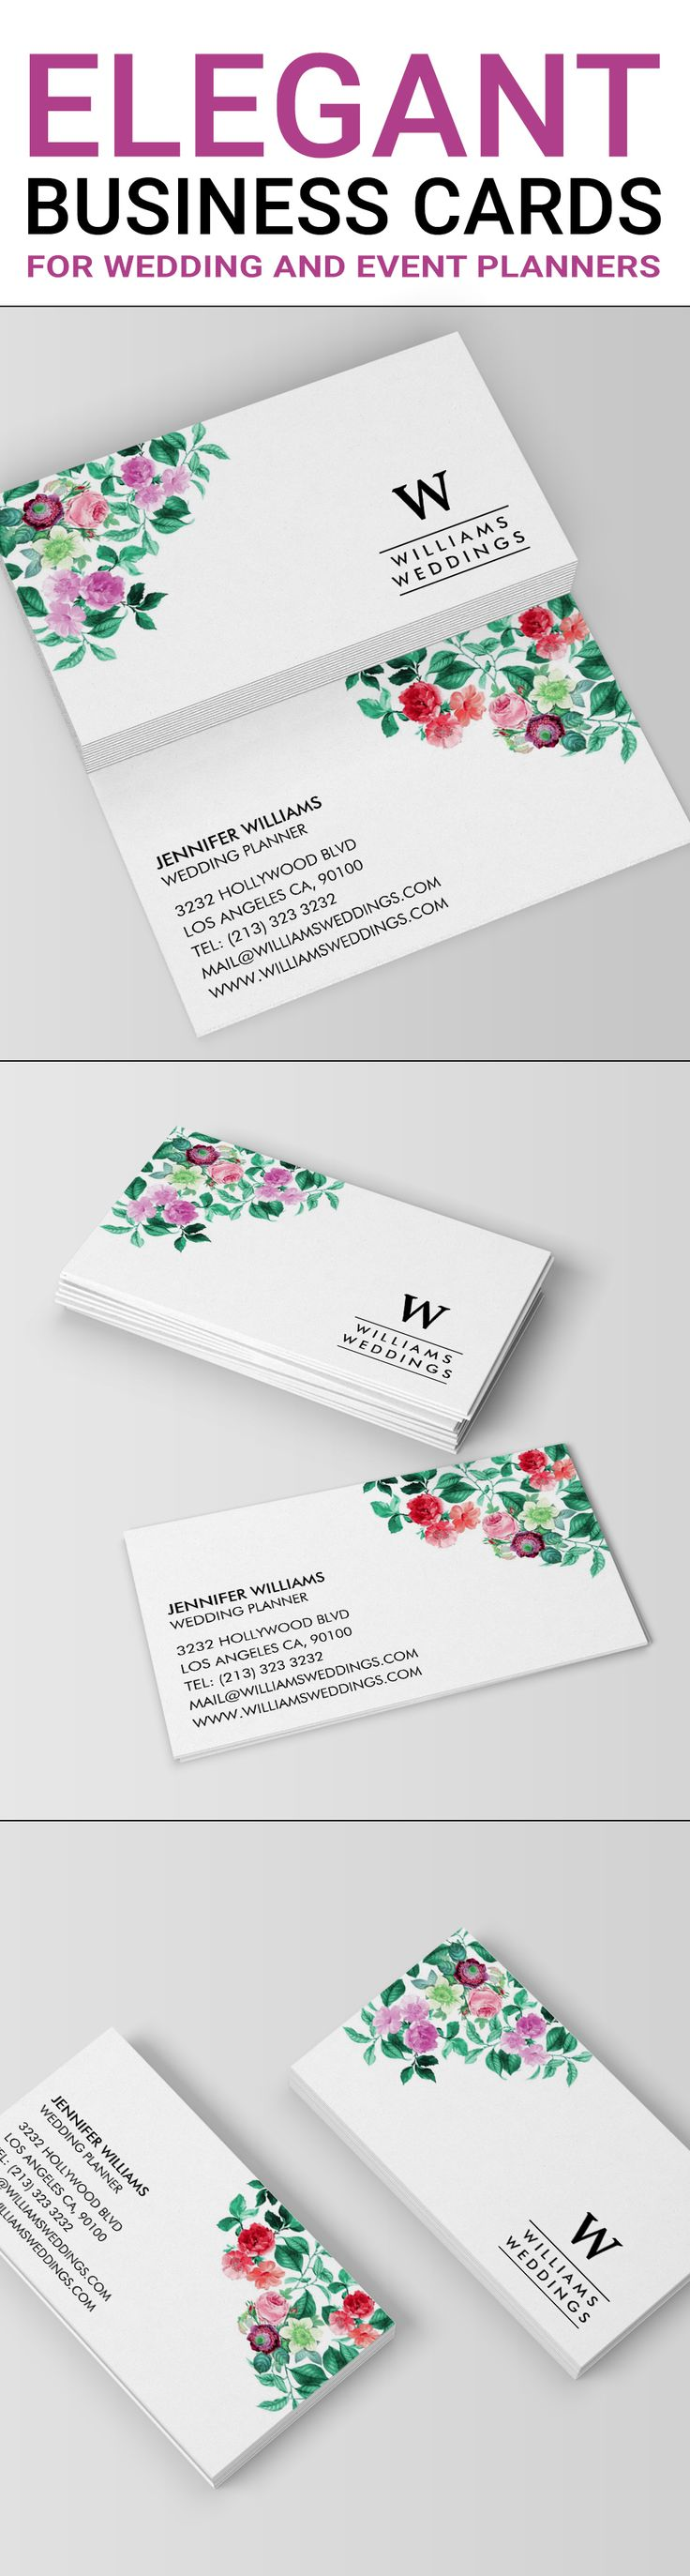 Elegant business cards for wedding planners and event planners. The floral business card design feature pink, purple red and green flowers. This is an online template ready for you to personalize. These elegant floral business cards will suit a florist as well. Get attention for your brand and business with this beautiful business card design.